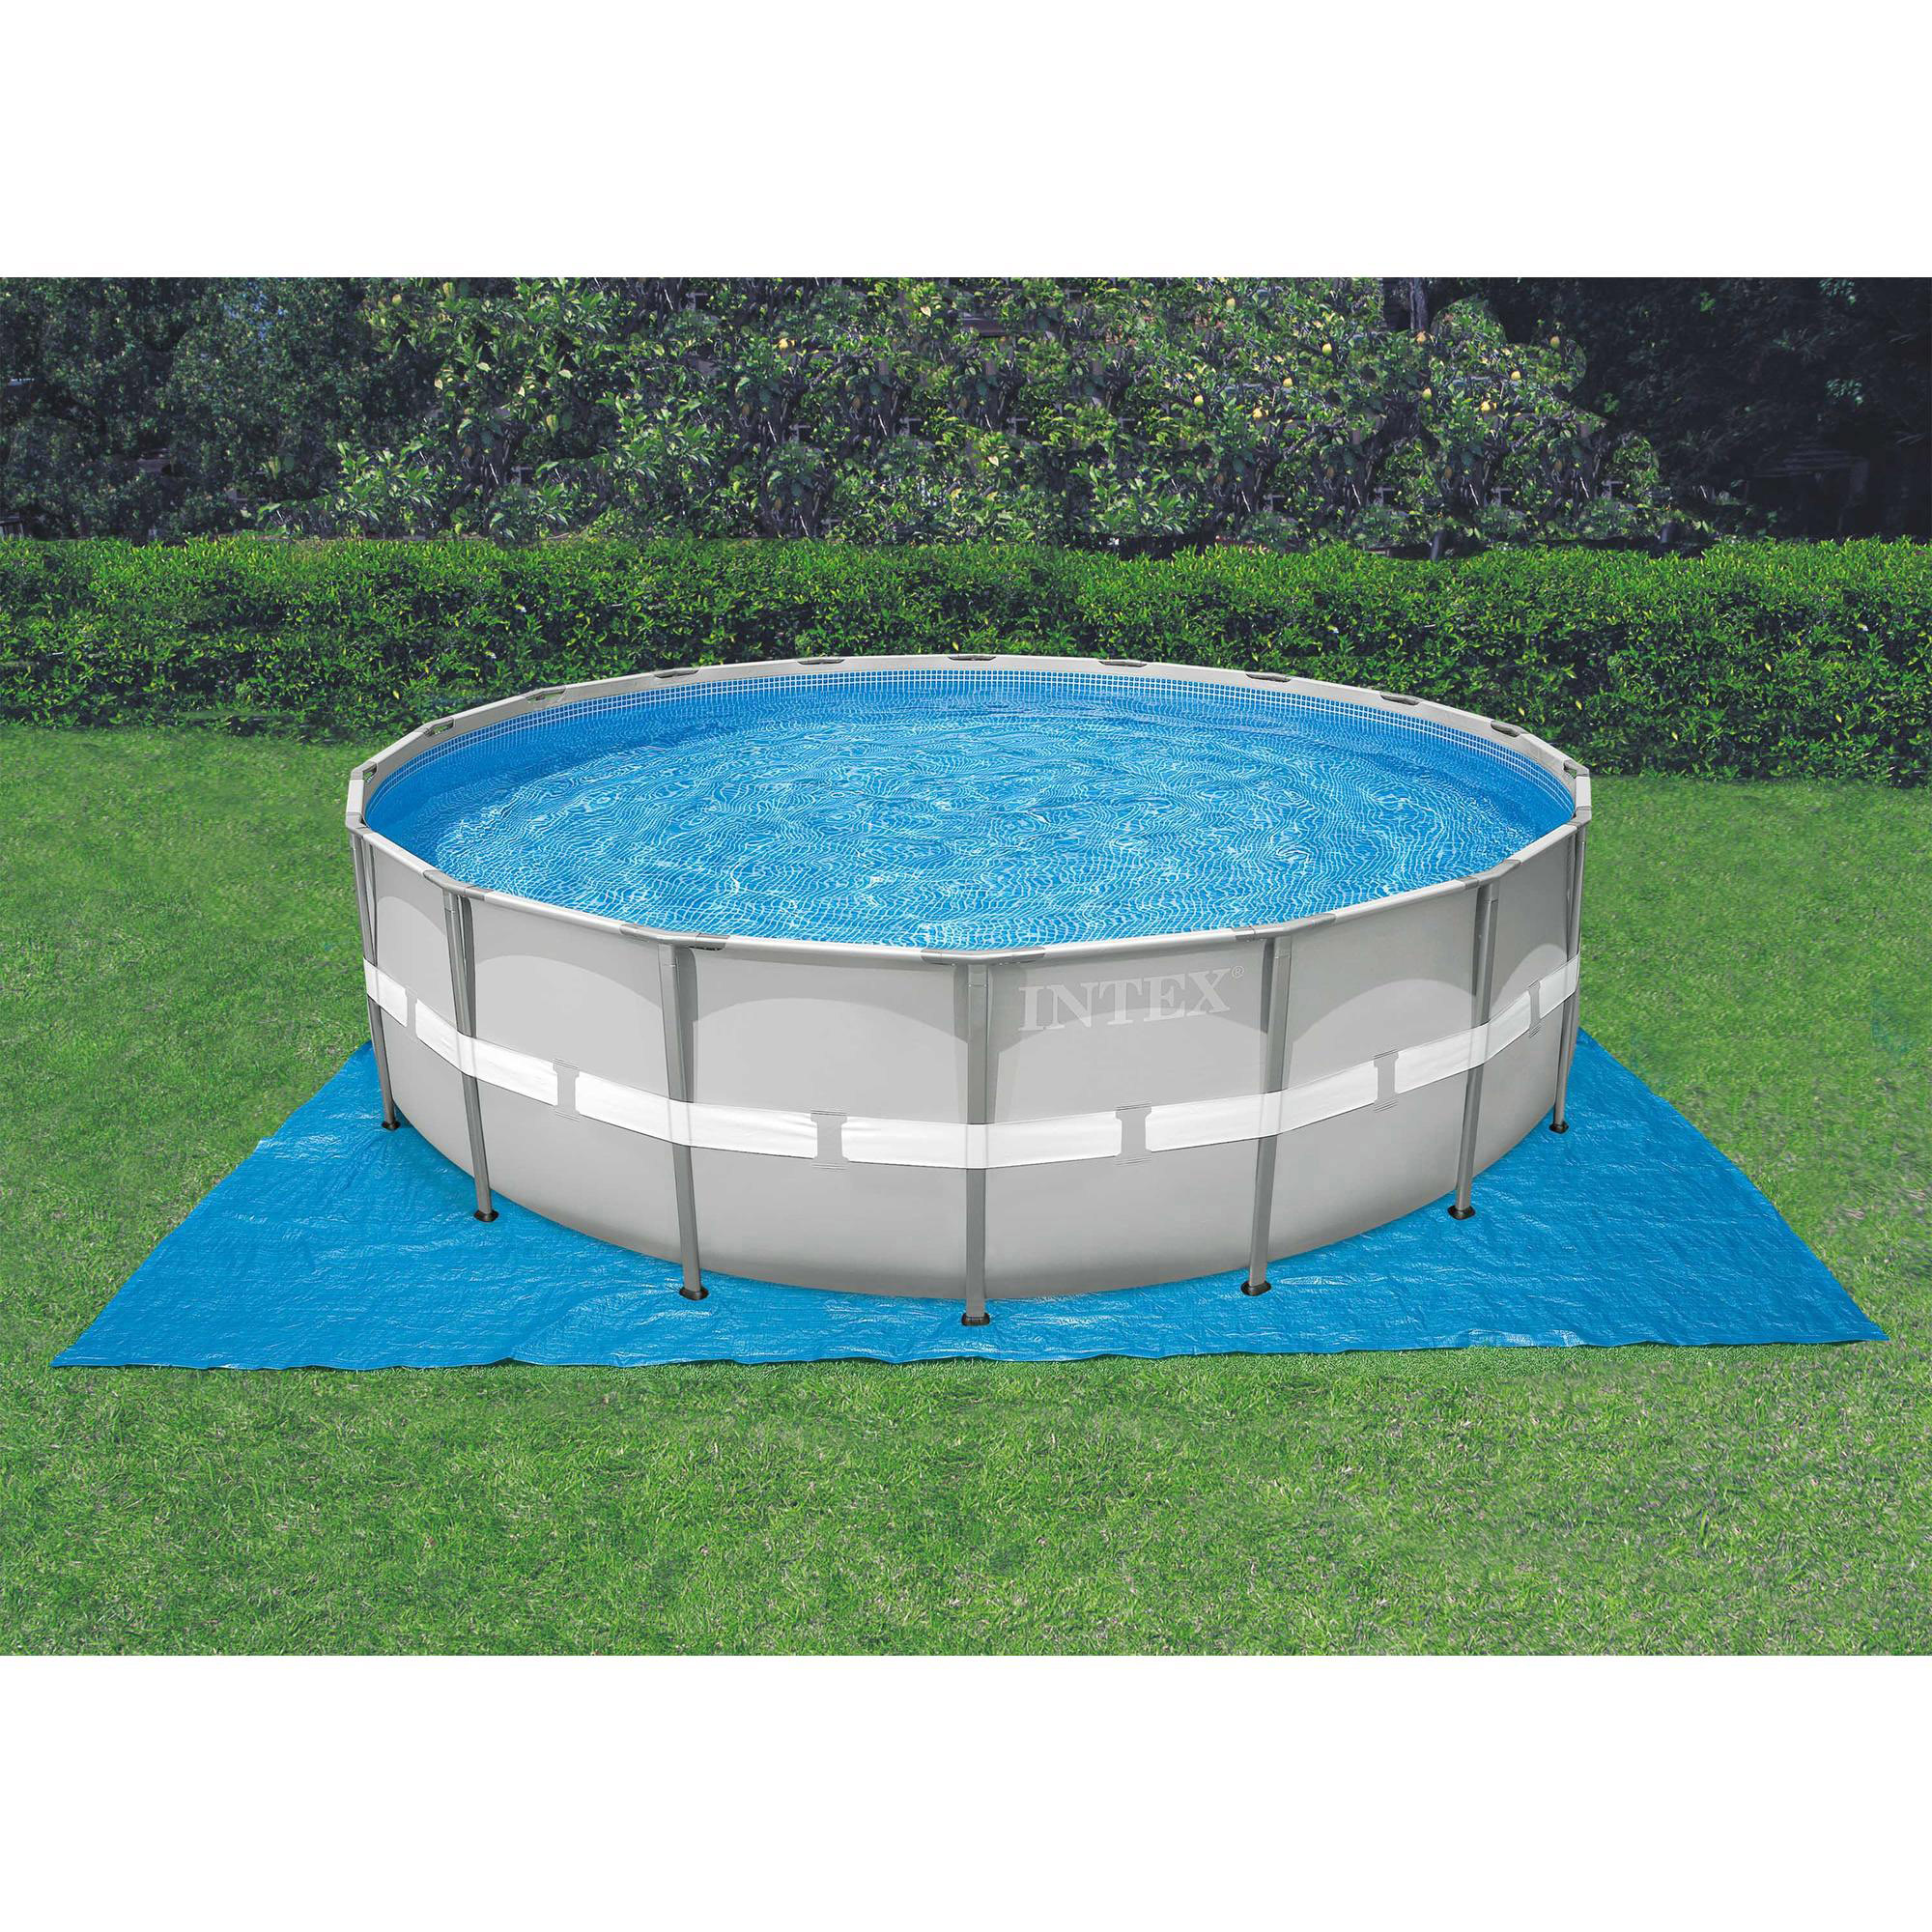 Intex 24 39 x 52 ultra frame above ground swimming pool set for Billige pool sets